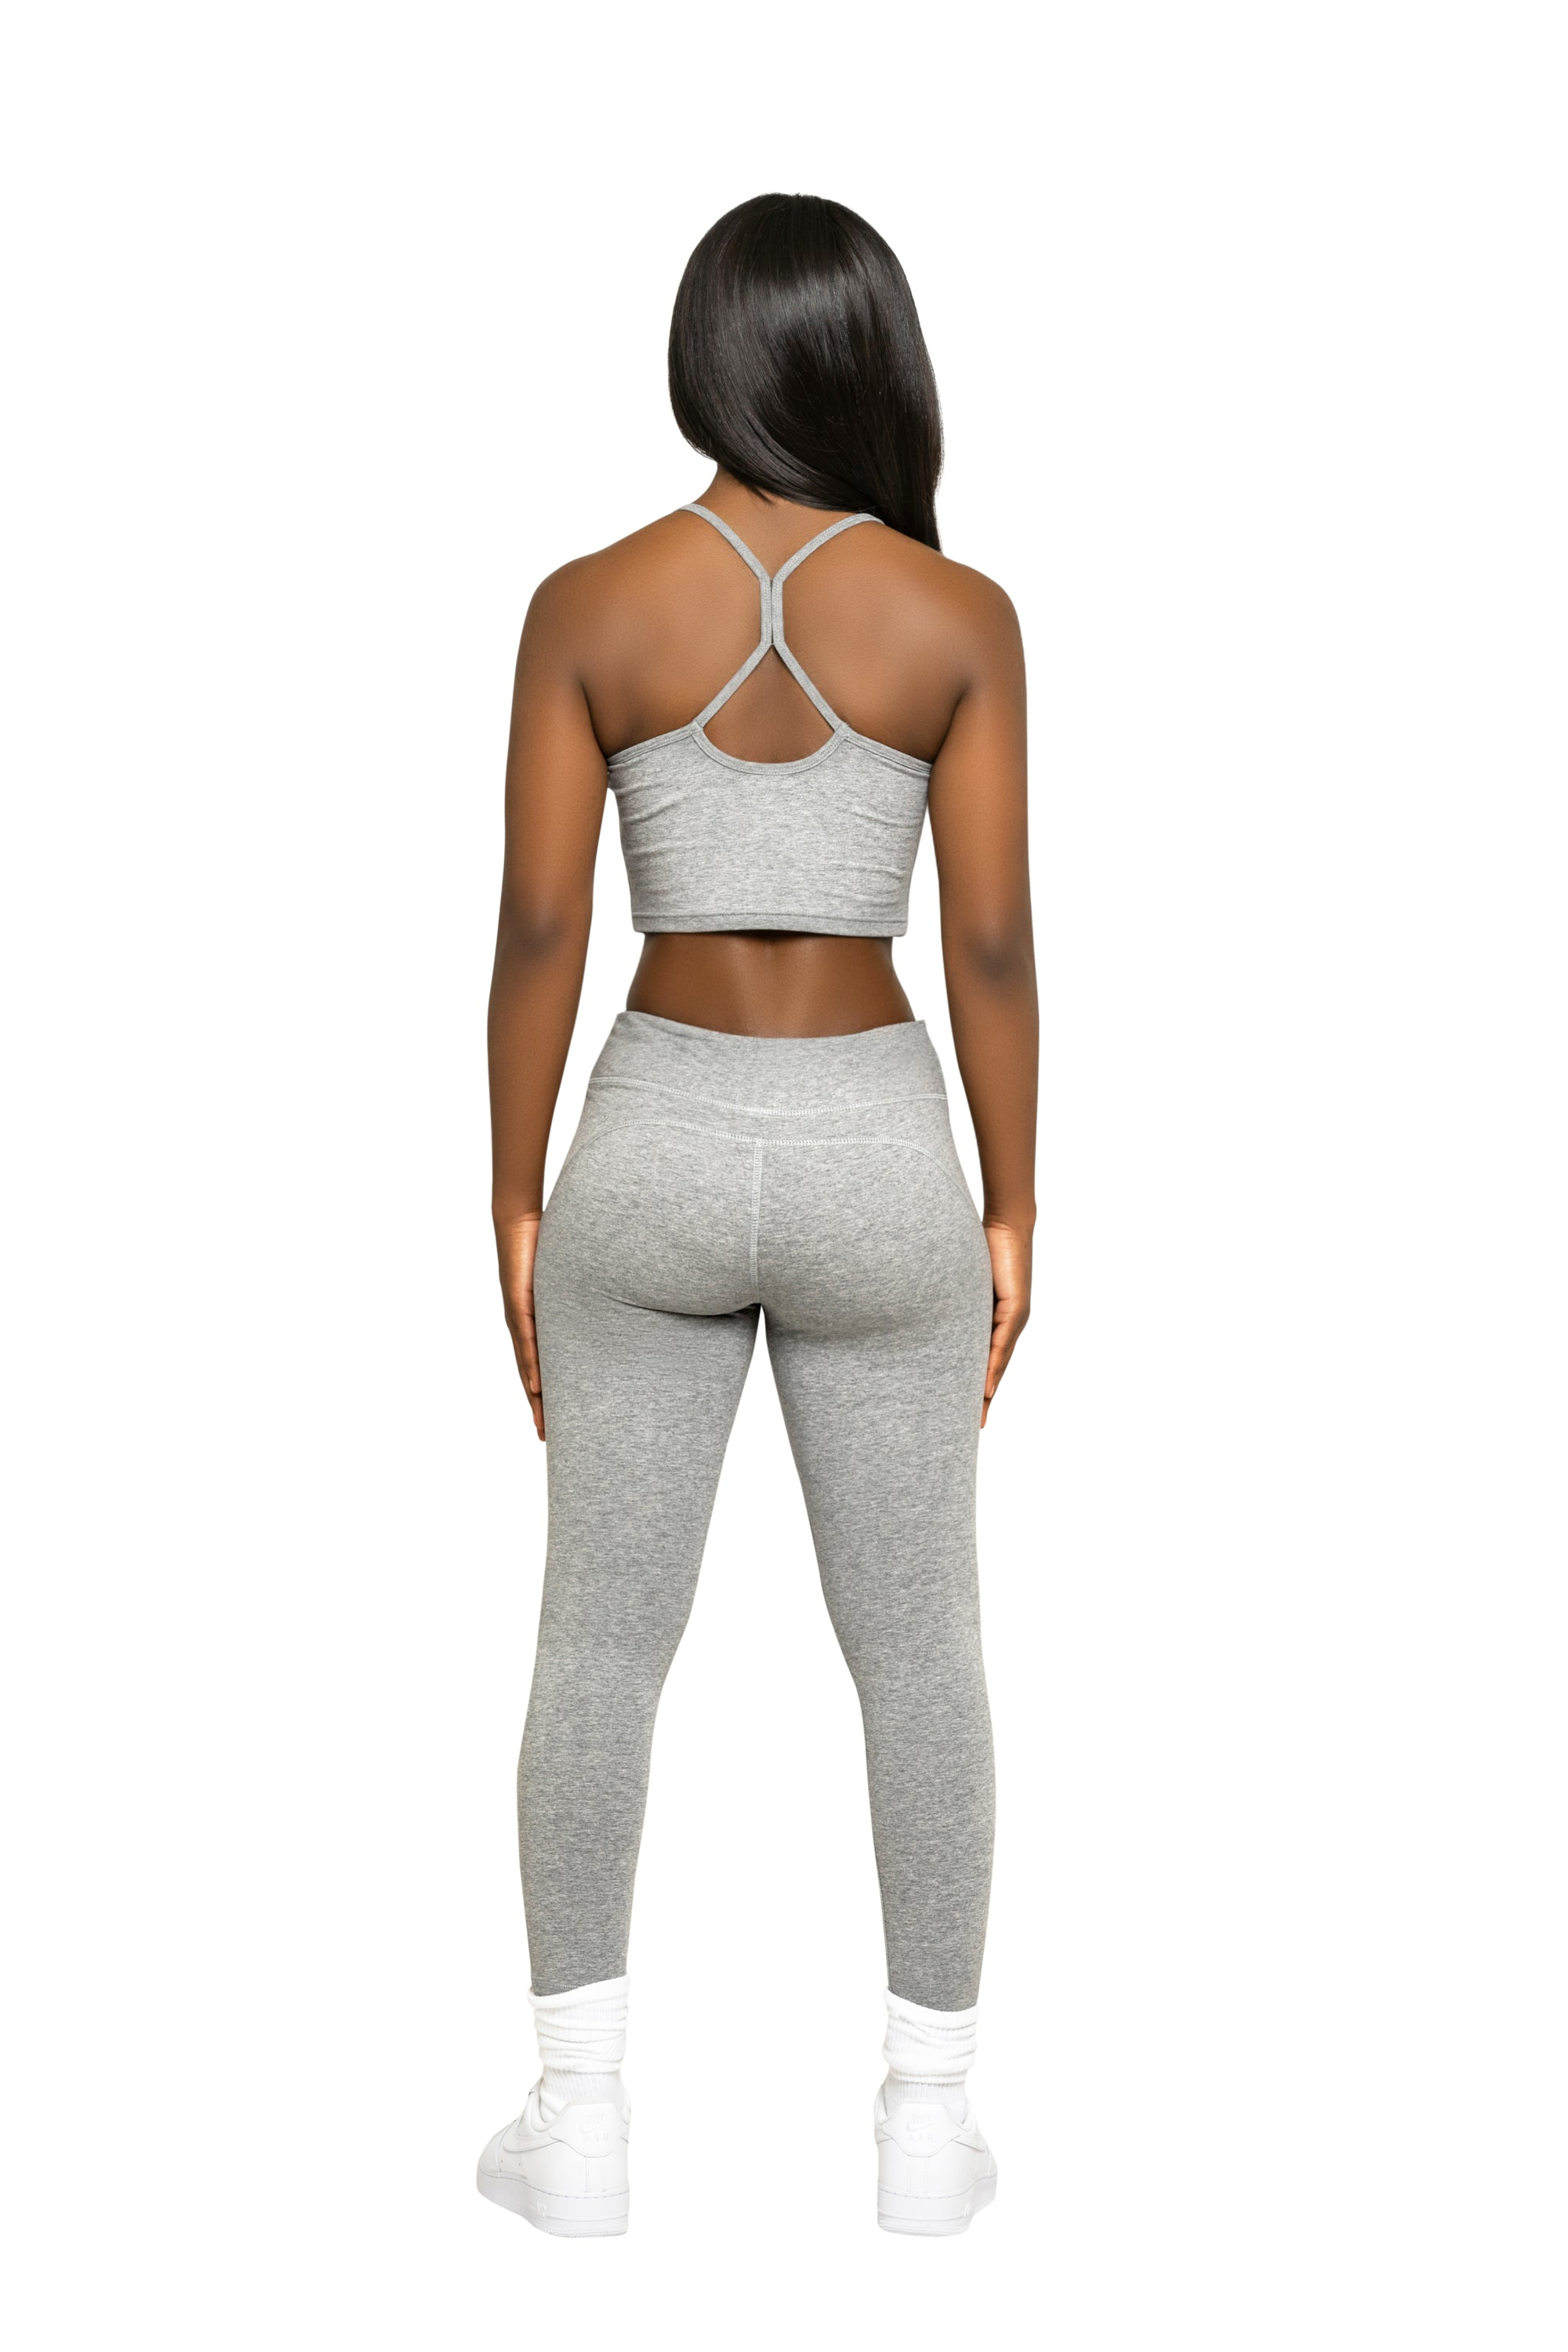 Vibes Grey Leggings - The Unicorn Universe